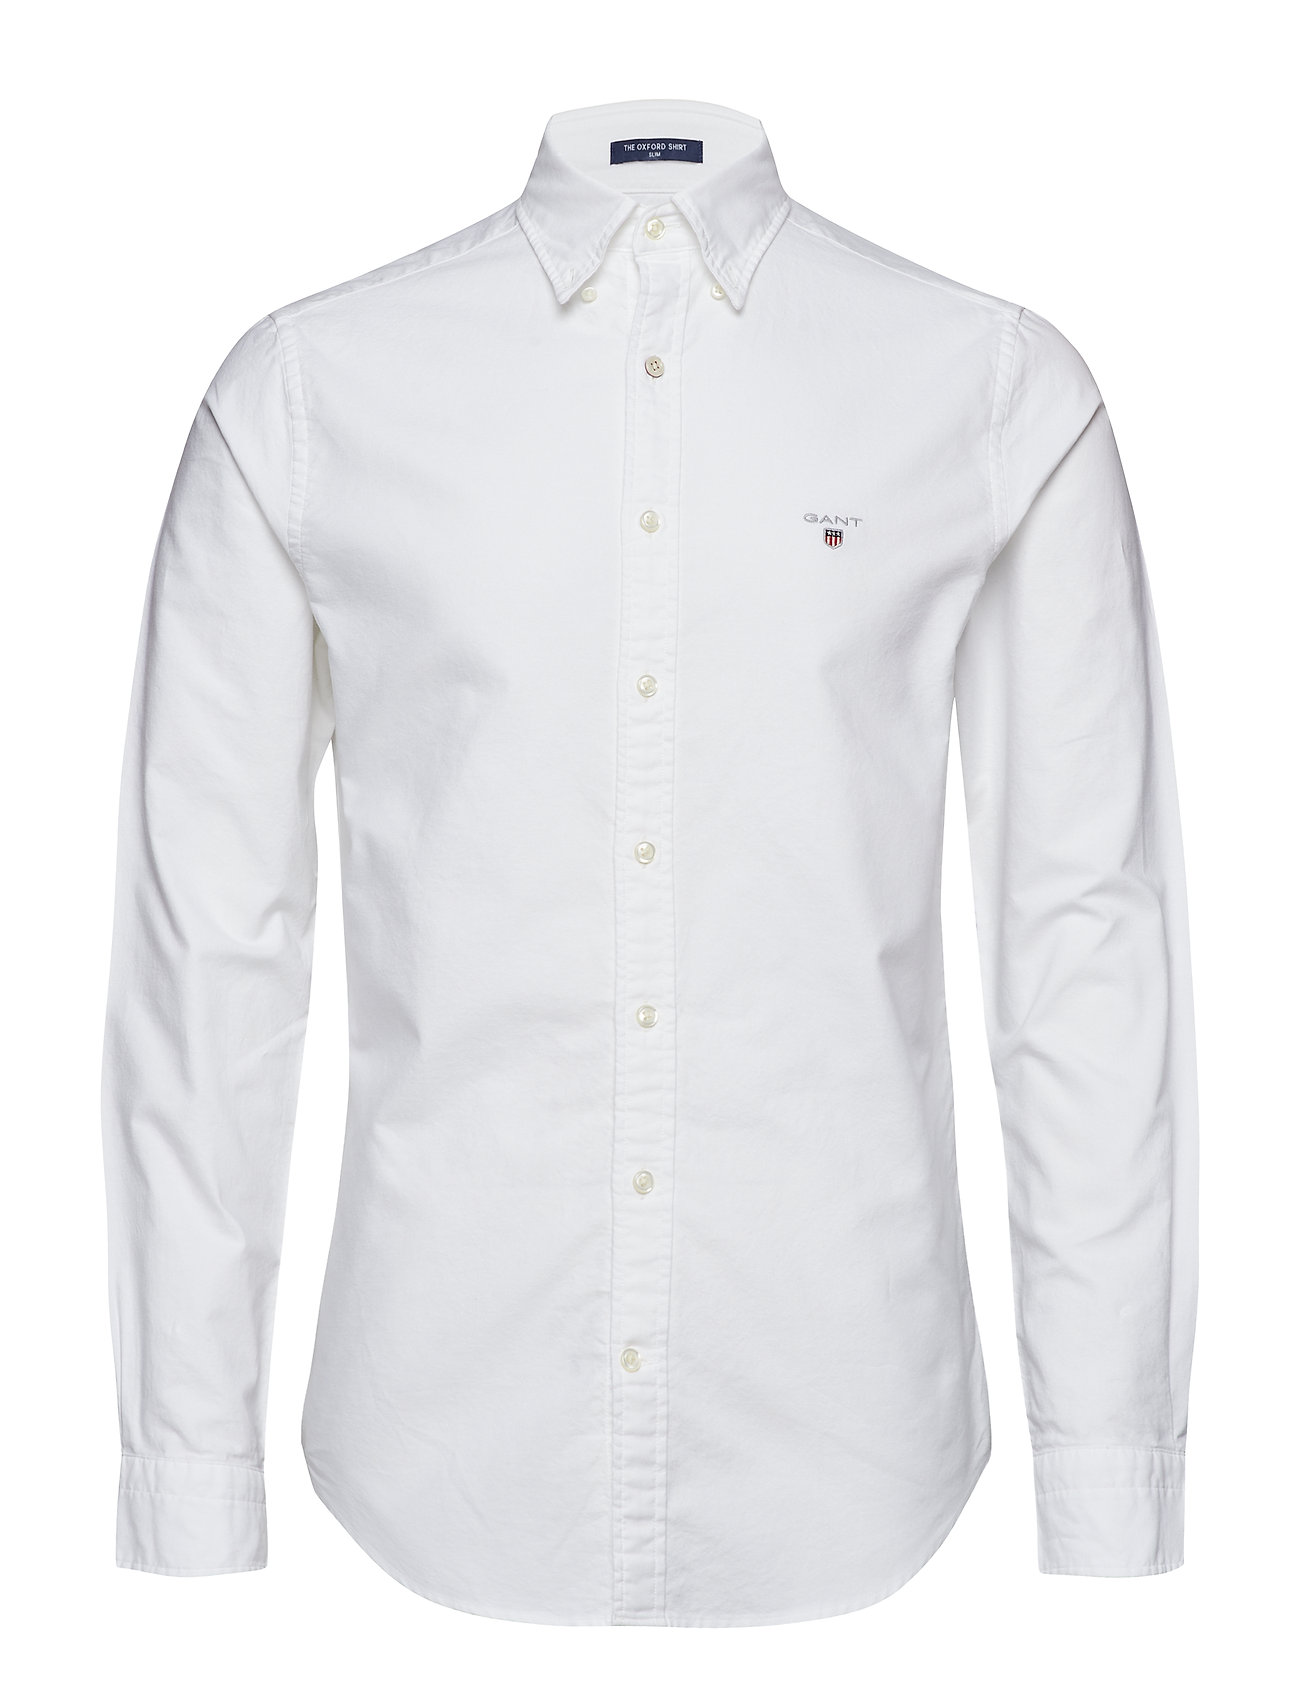 Gant SLIM OXFORD SHIRT BD - WHITE